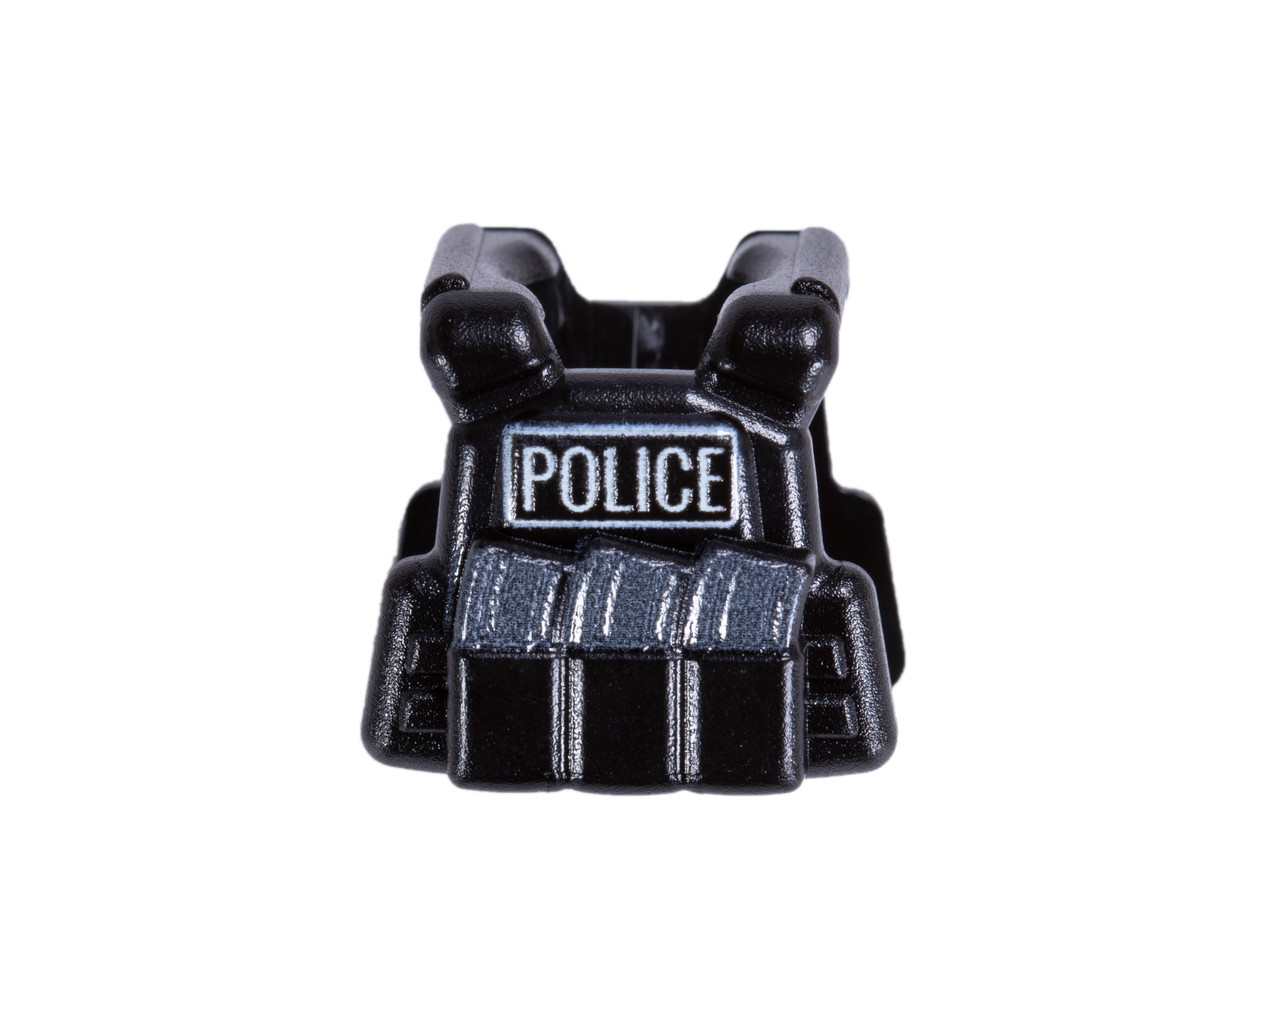 Plate Carrier Vest - Black with Printed Police Lettering